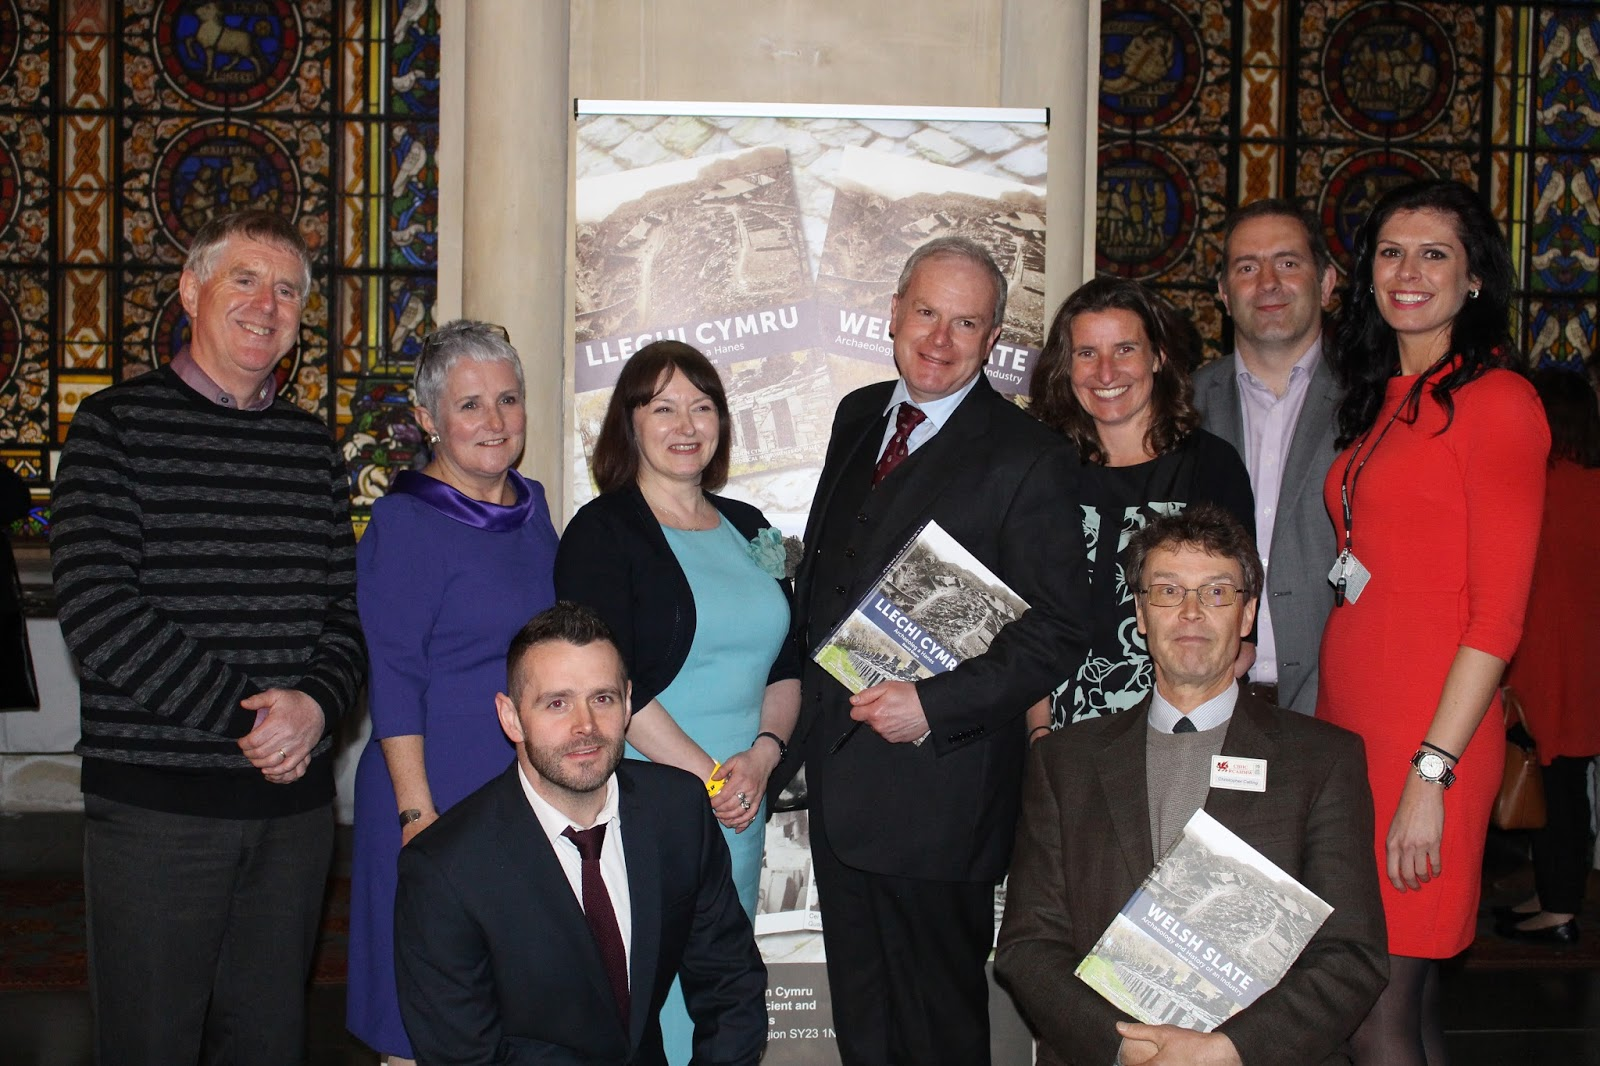 The World Heritage Bid steering group. Led by Gwynedd Council, with membership from RCAHMW, Cadw, National Museum Wales, Snowdonia National Park Authority, Govannon Consultancy, Bangor University and the National Trust.